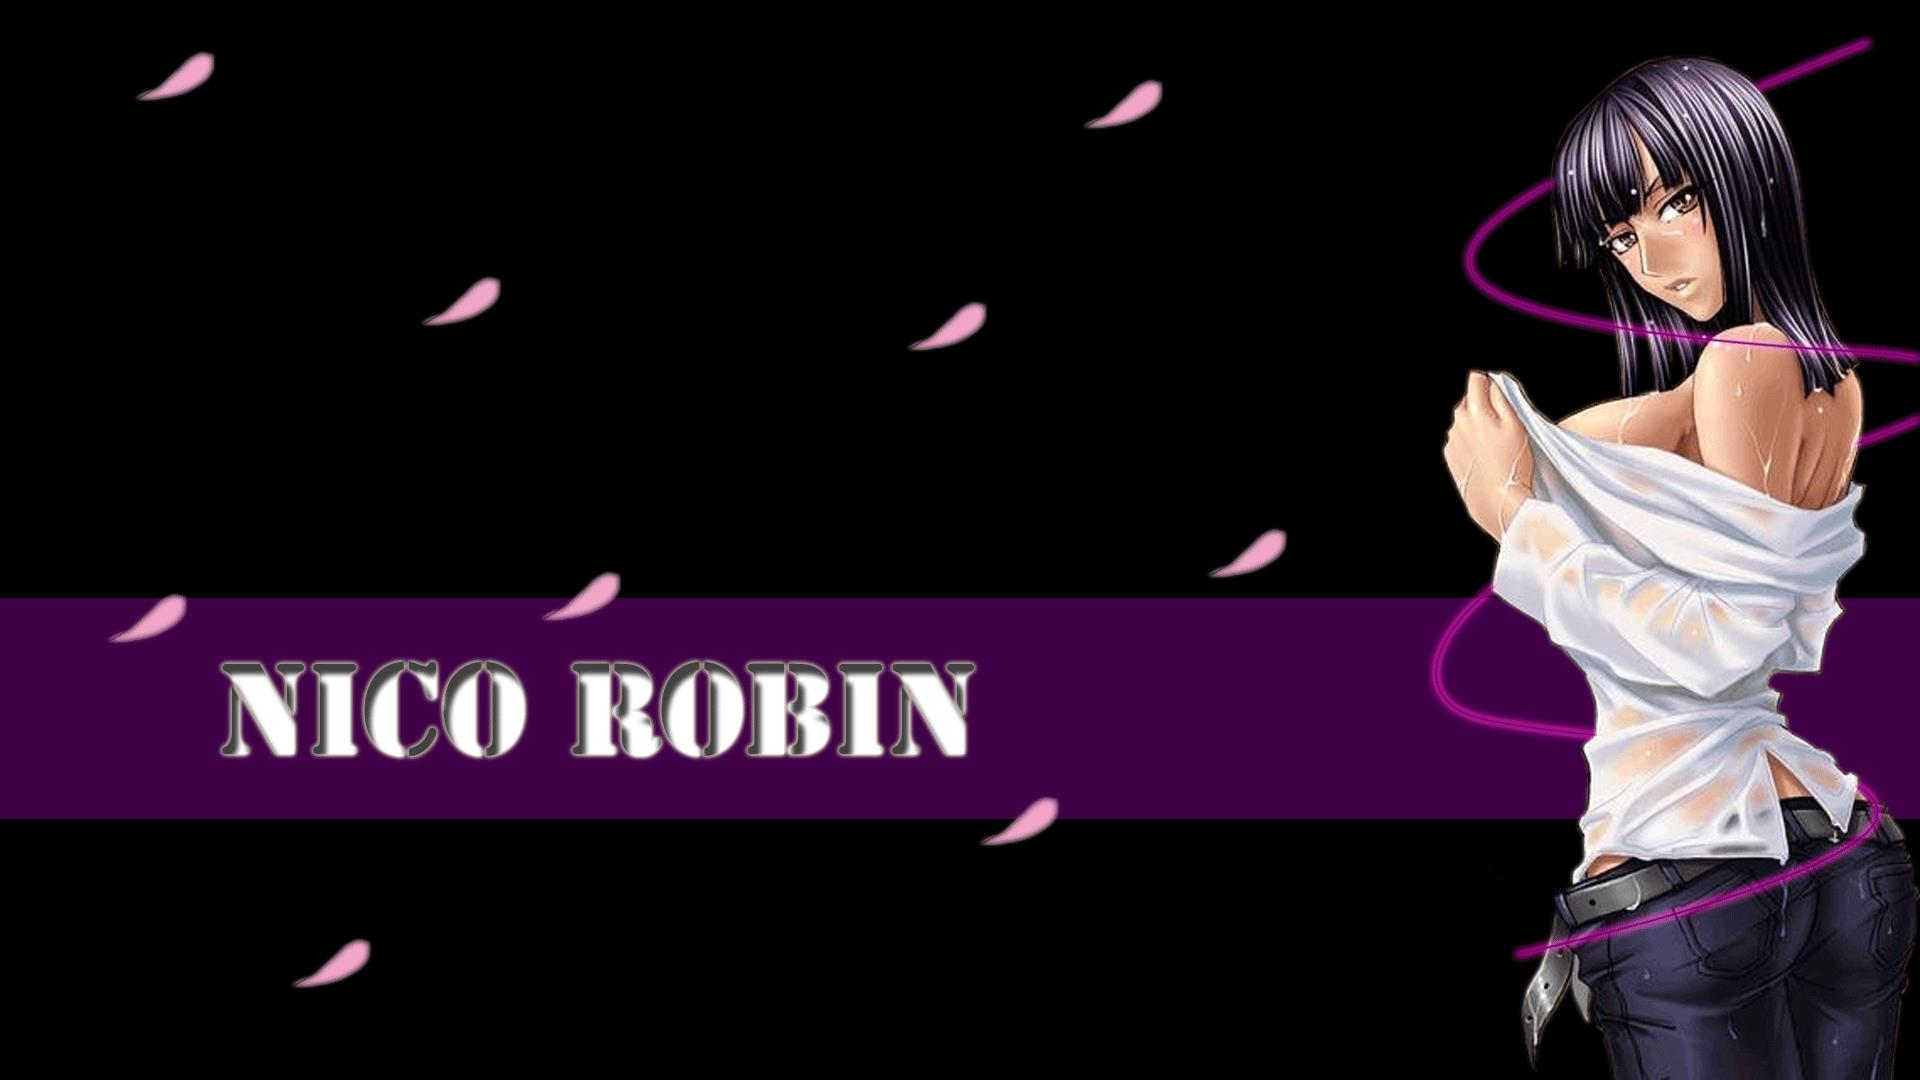 Nico Robin Wallpapers Wallpaper Cave